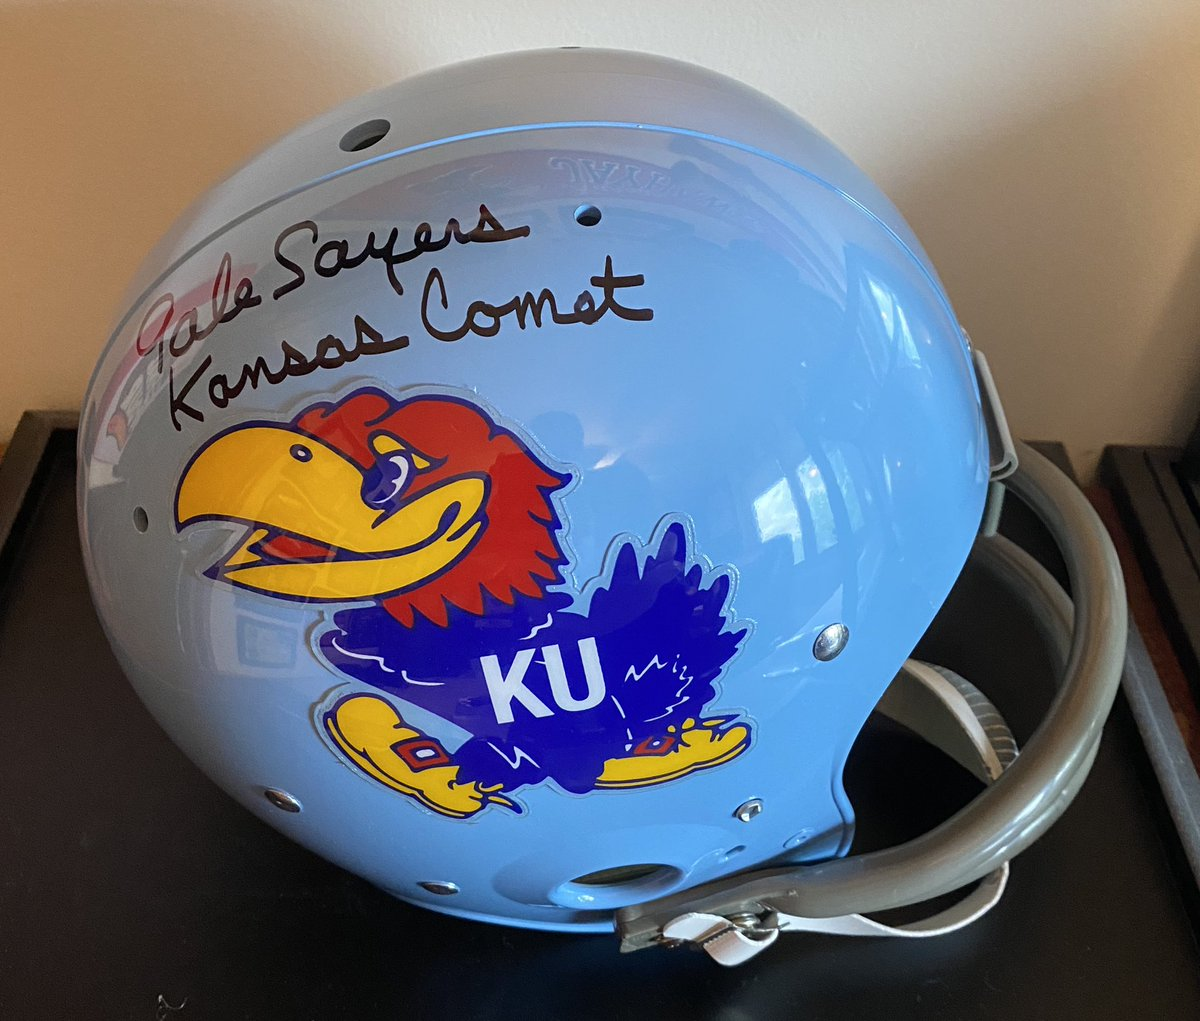 @KU_Football Let's roll it back even further. This vintage was pretty fresh... and The Kansas Comet agrees. 🔥🏈🔥